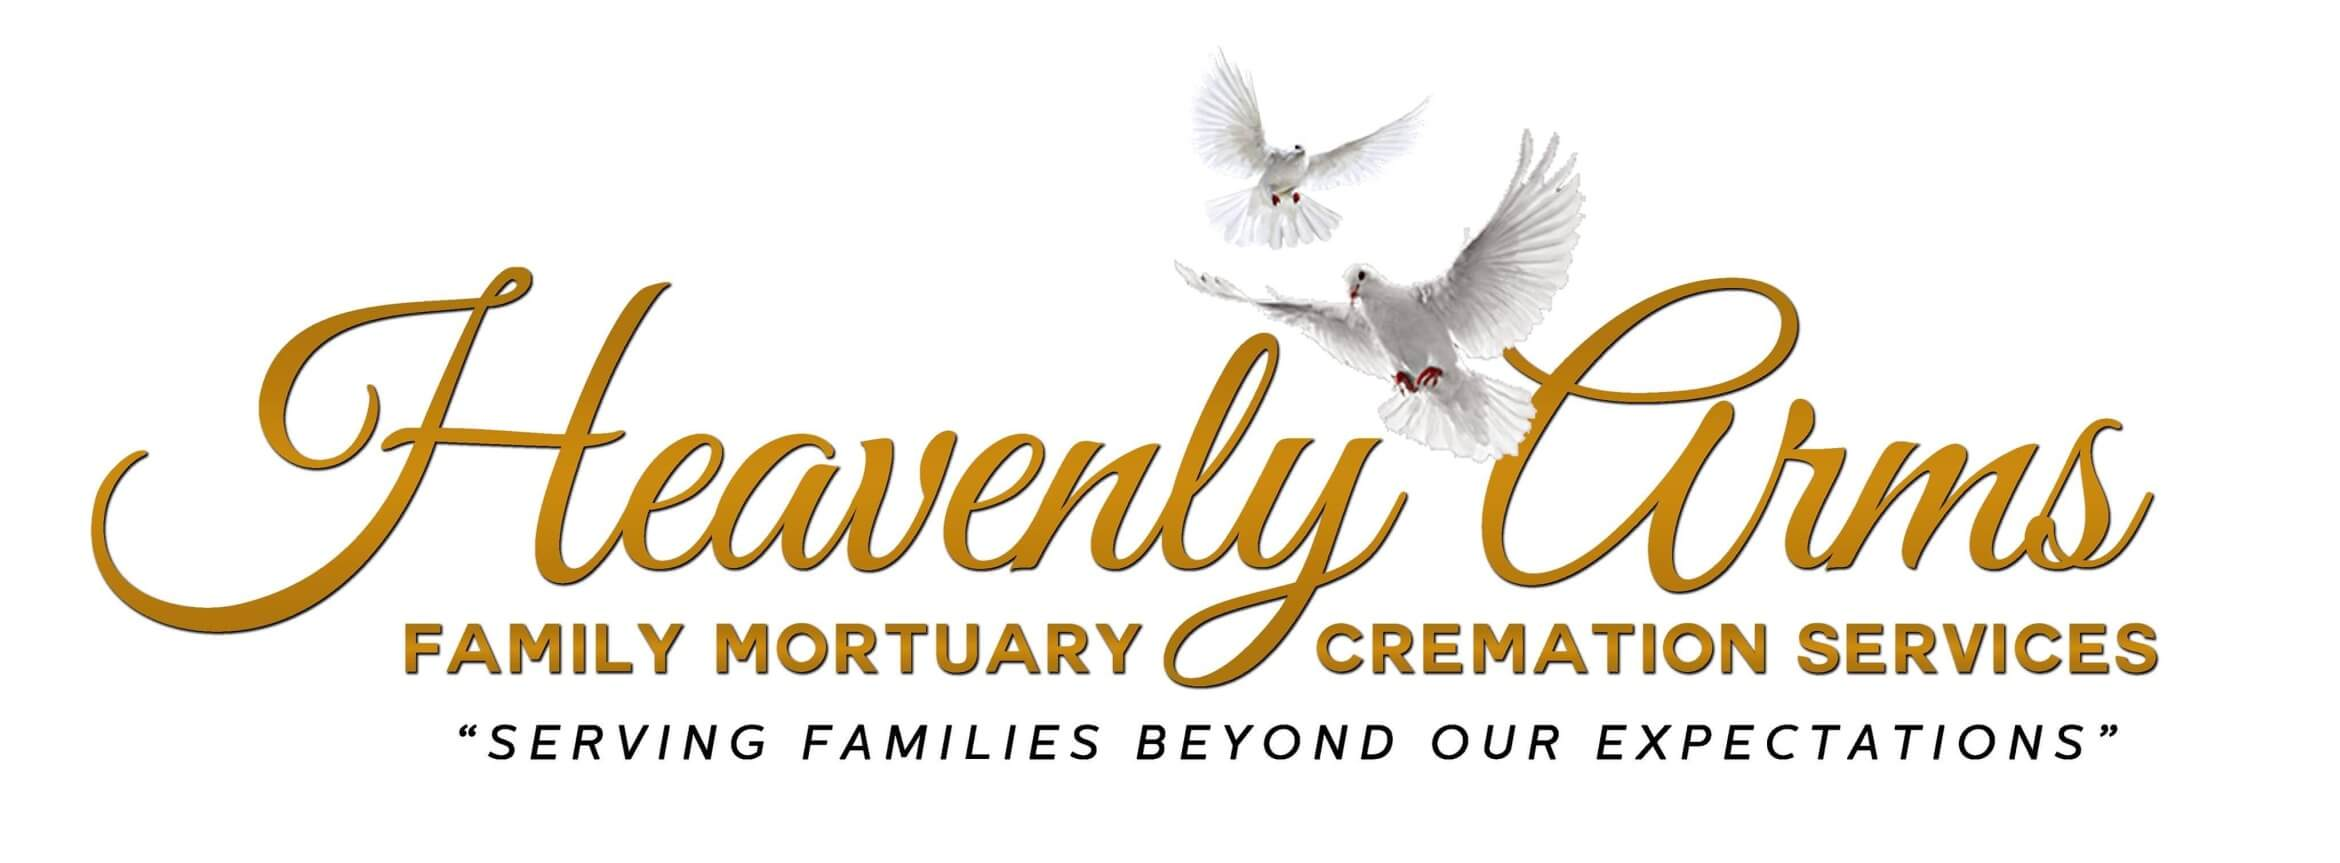 Heavenly Arms Family Mortuary & Cremation Services LLC